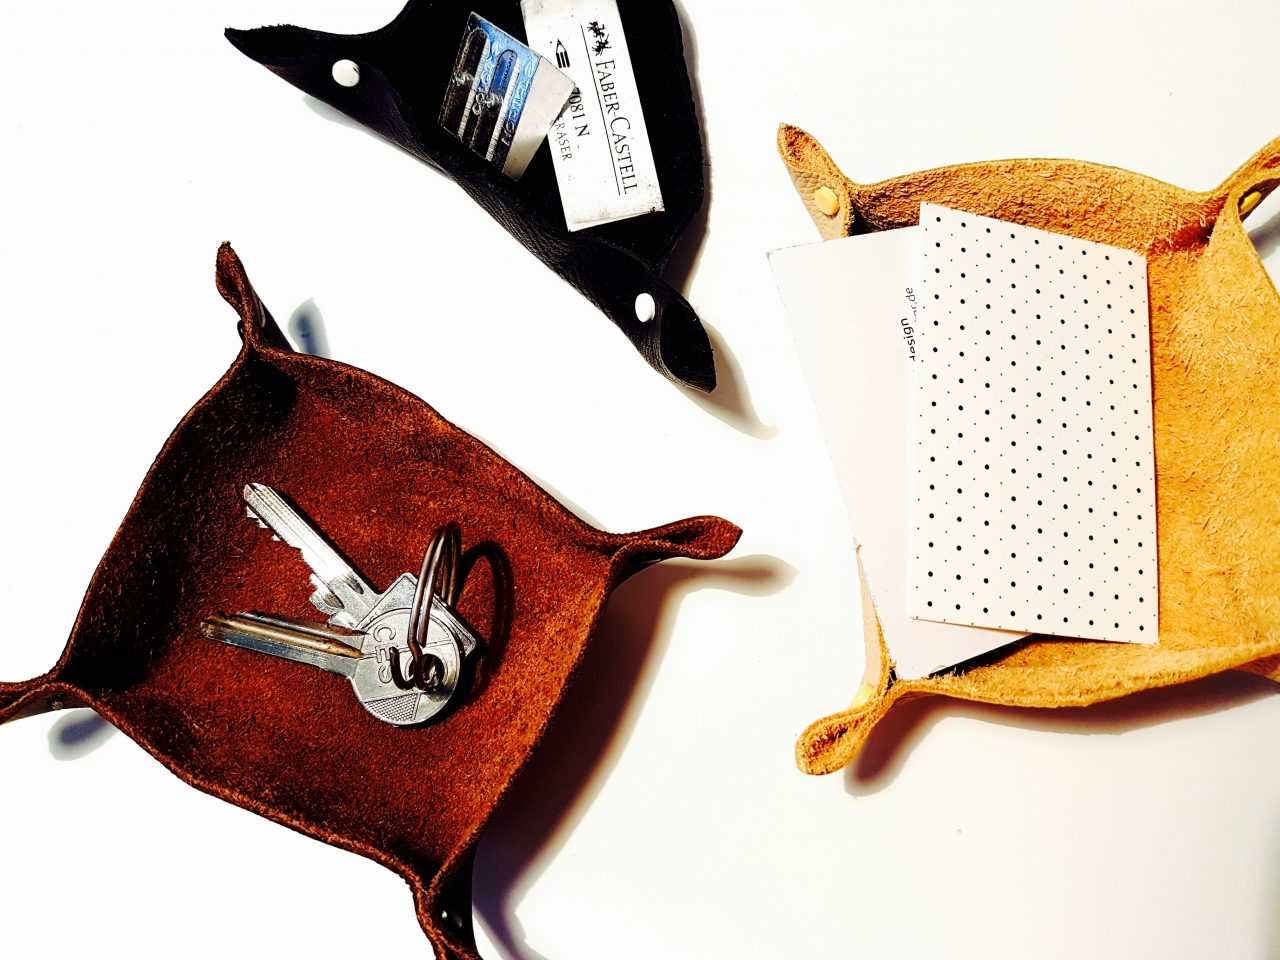 Three handmade leather key dishes in different shapes and colors